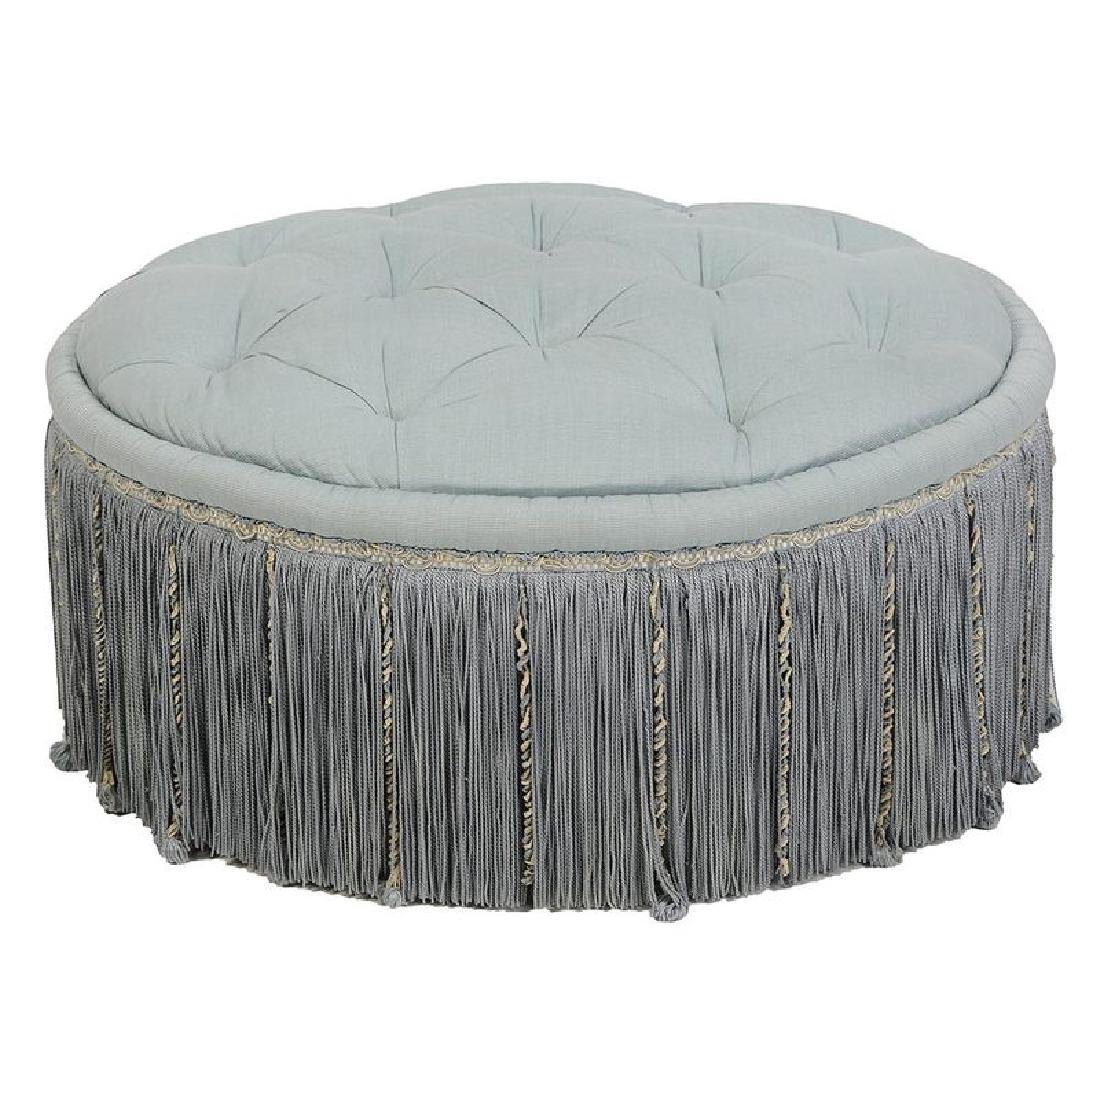 Tufted Upholstered and Tassel Decorated Ottoman